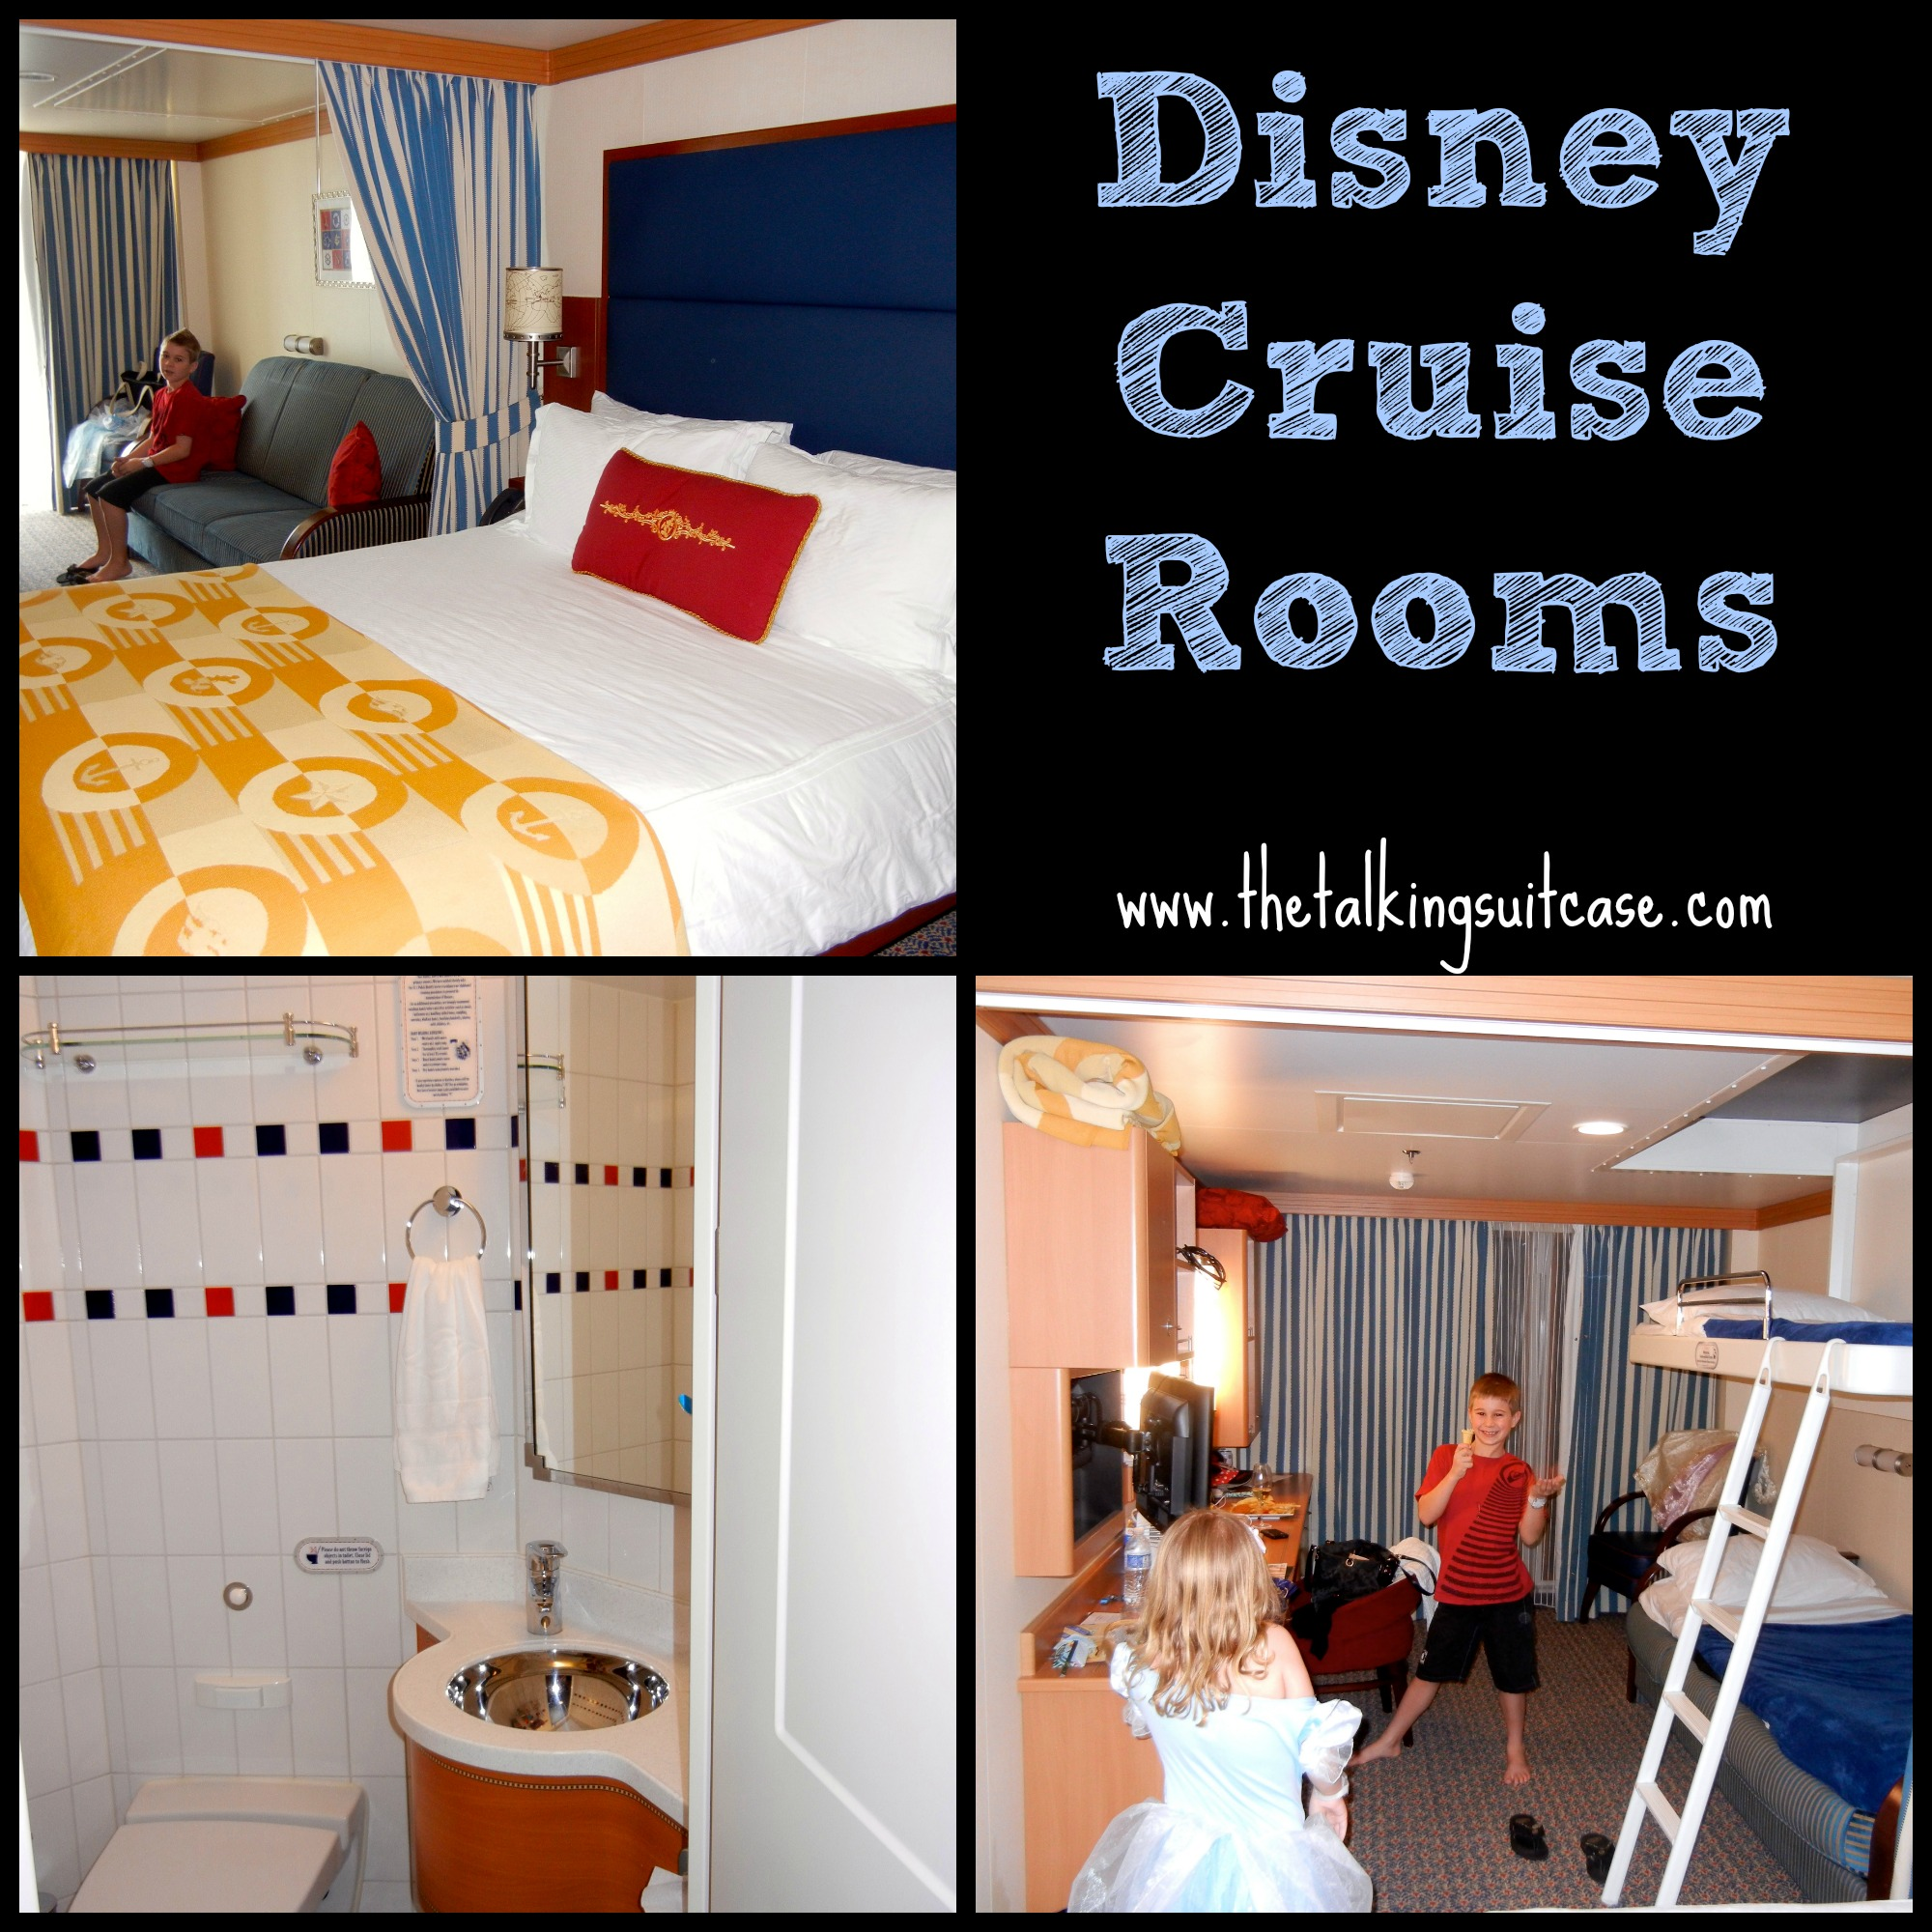 Disney Cruise Rooms I Stateroom On Disney Fantasy